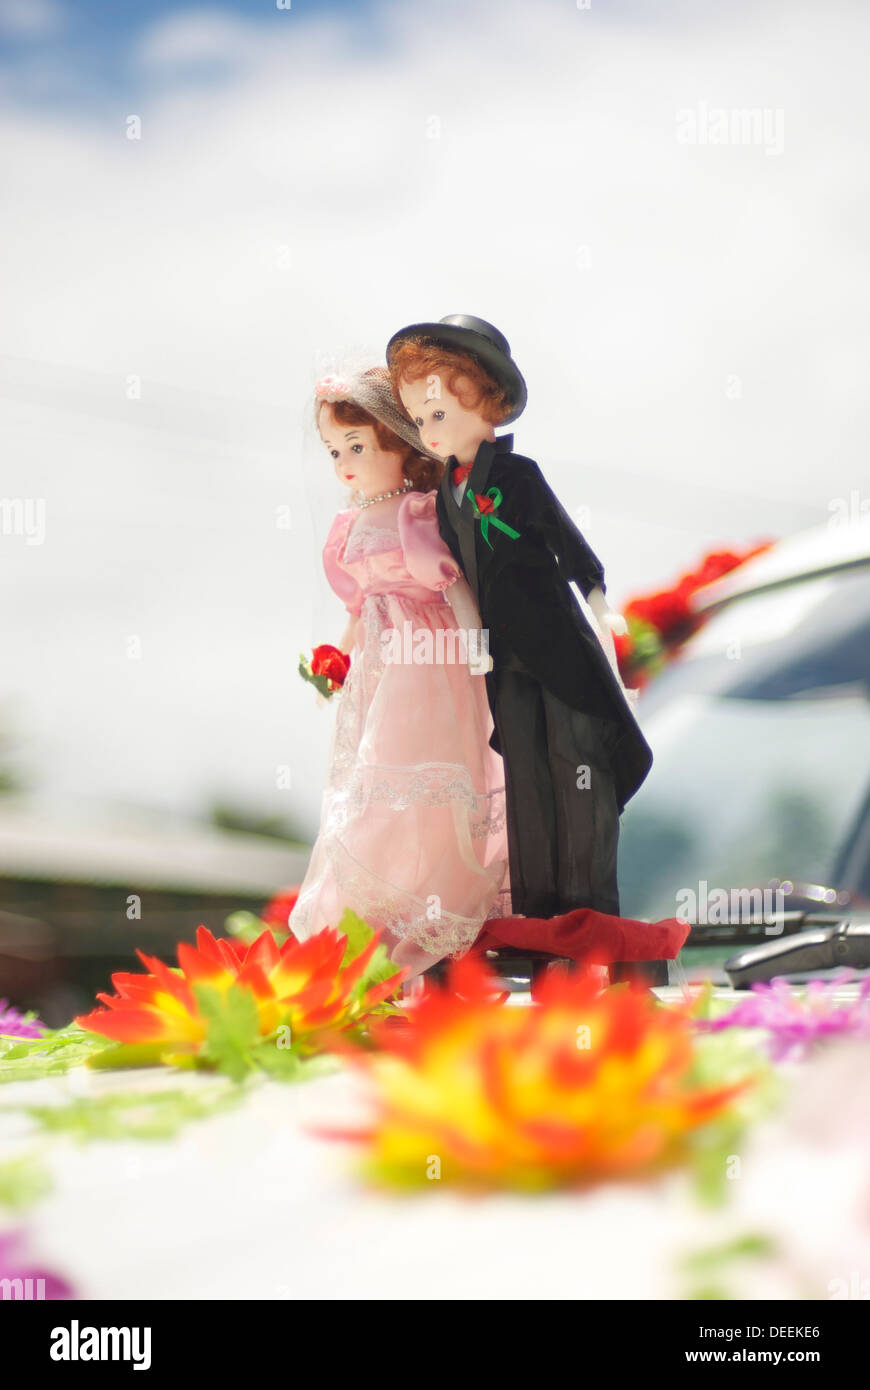 Miniature smart couple based on front car ready for wedding with flowers on their feet Stock Photo